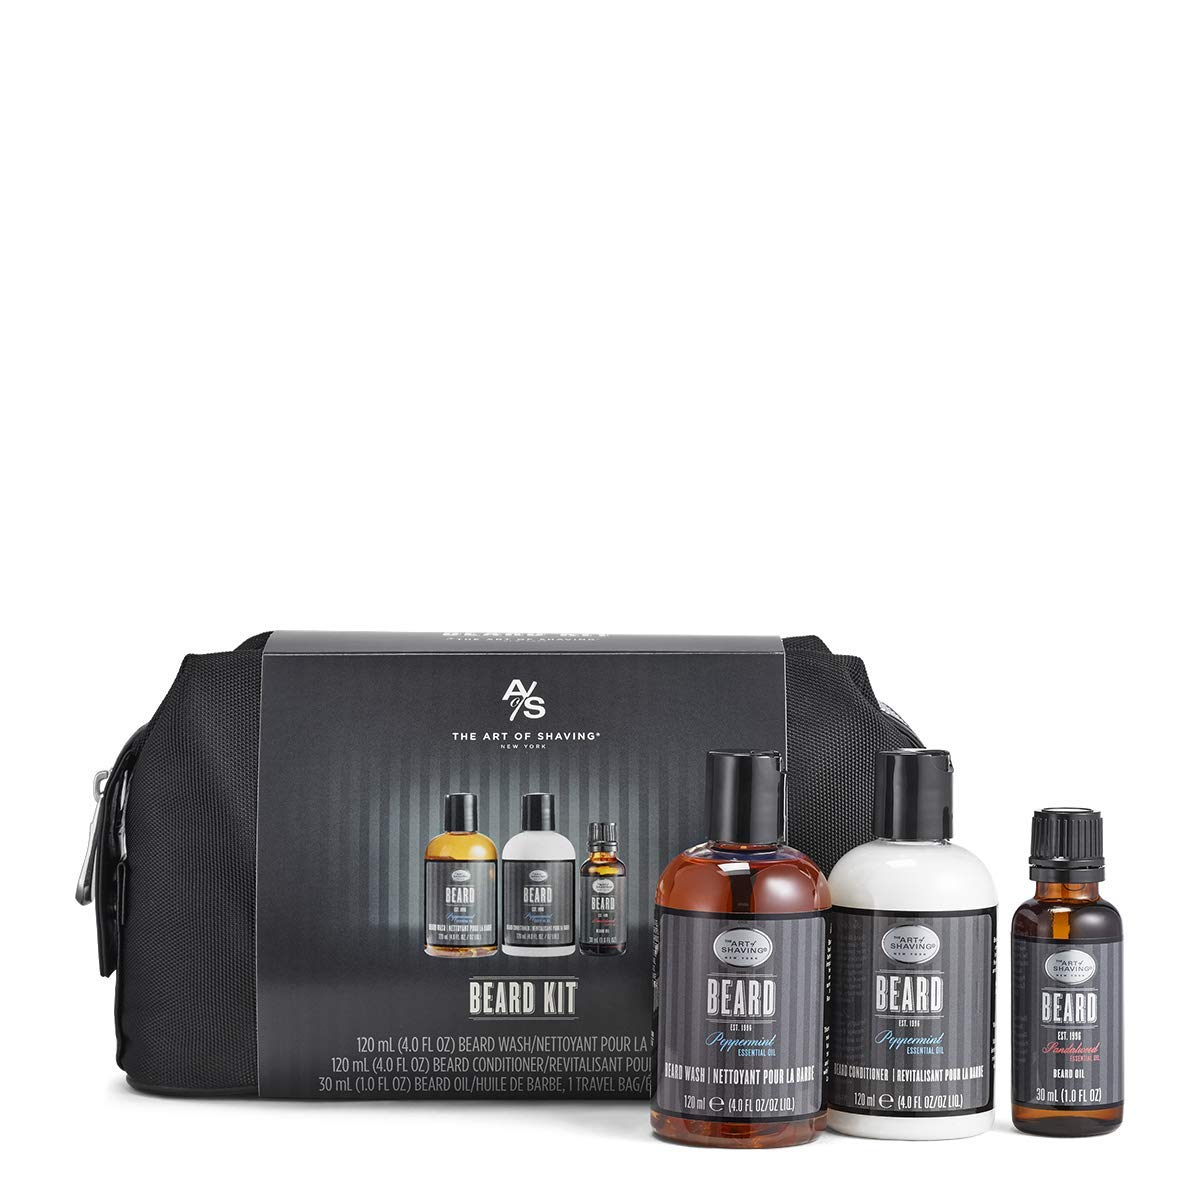 black toiletry bag and bottles of beard products